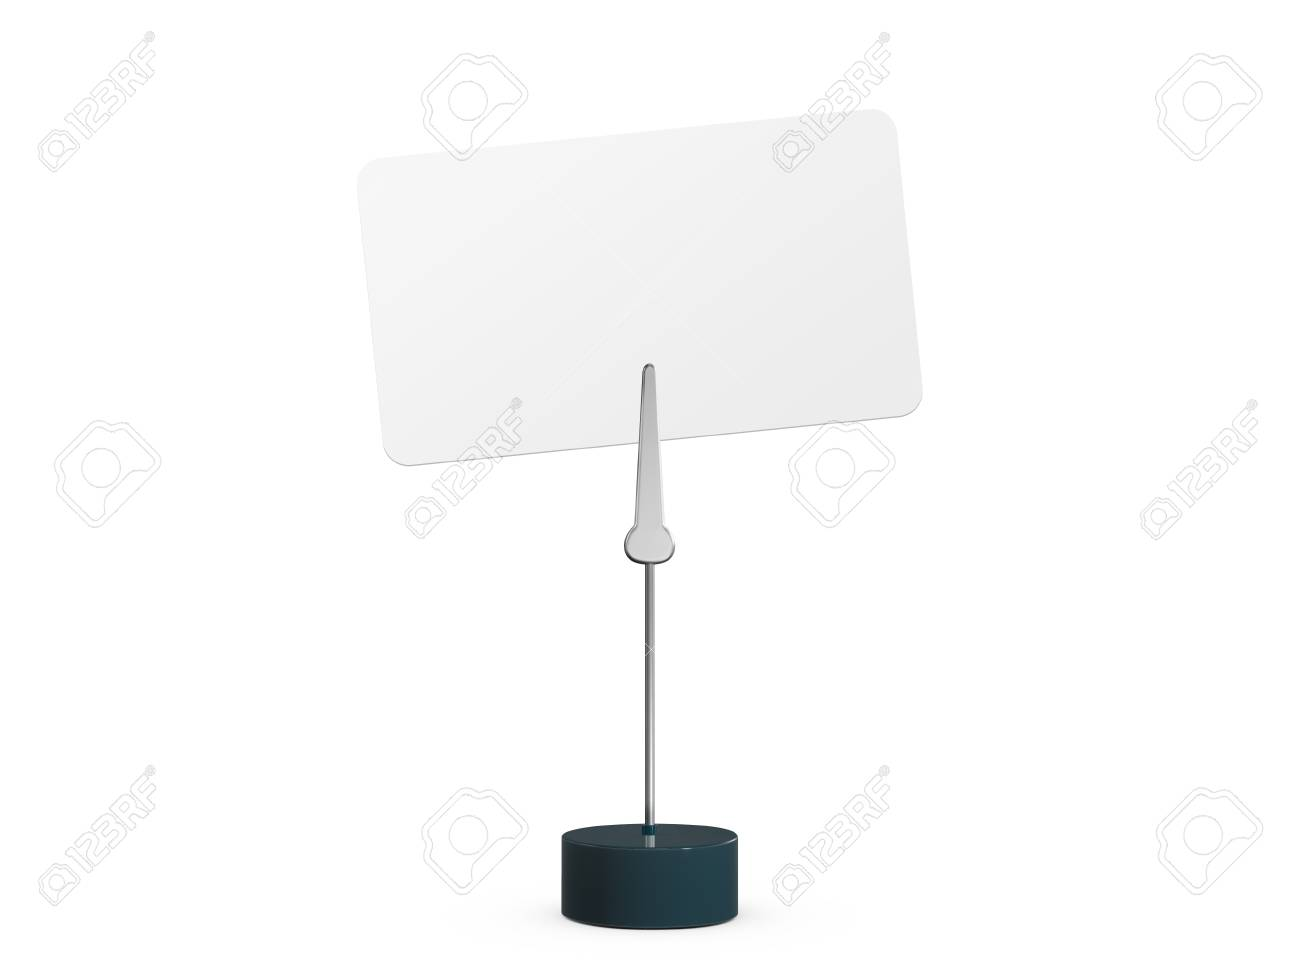 Blank business card attached to card holder, isolated on white background. Stock Photo - 22591842